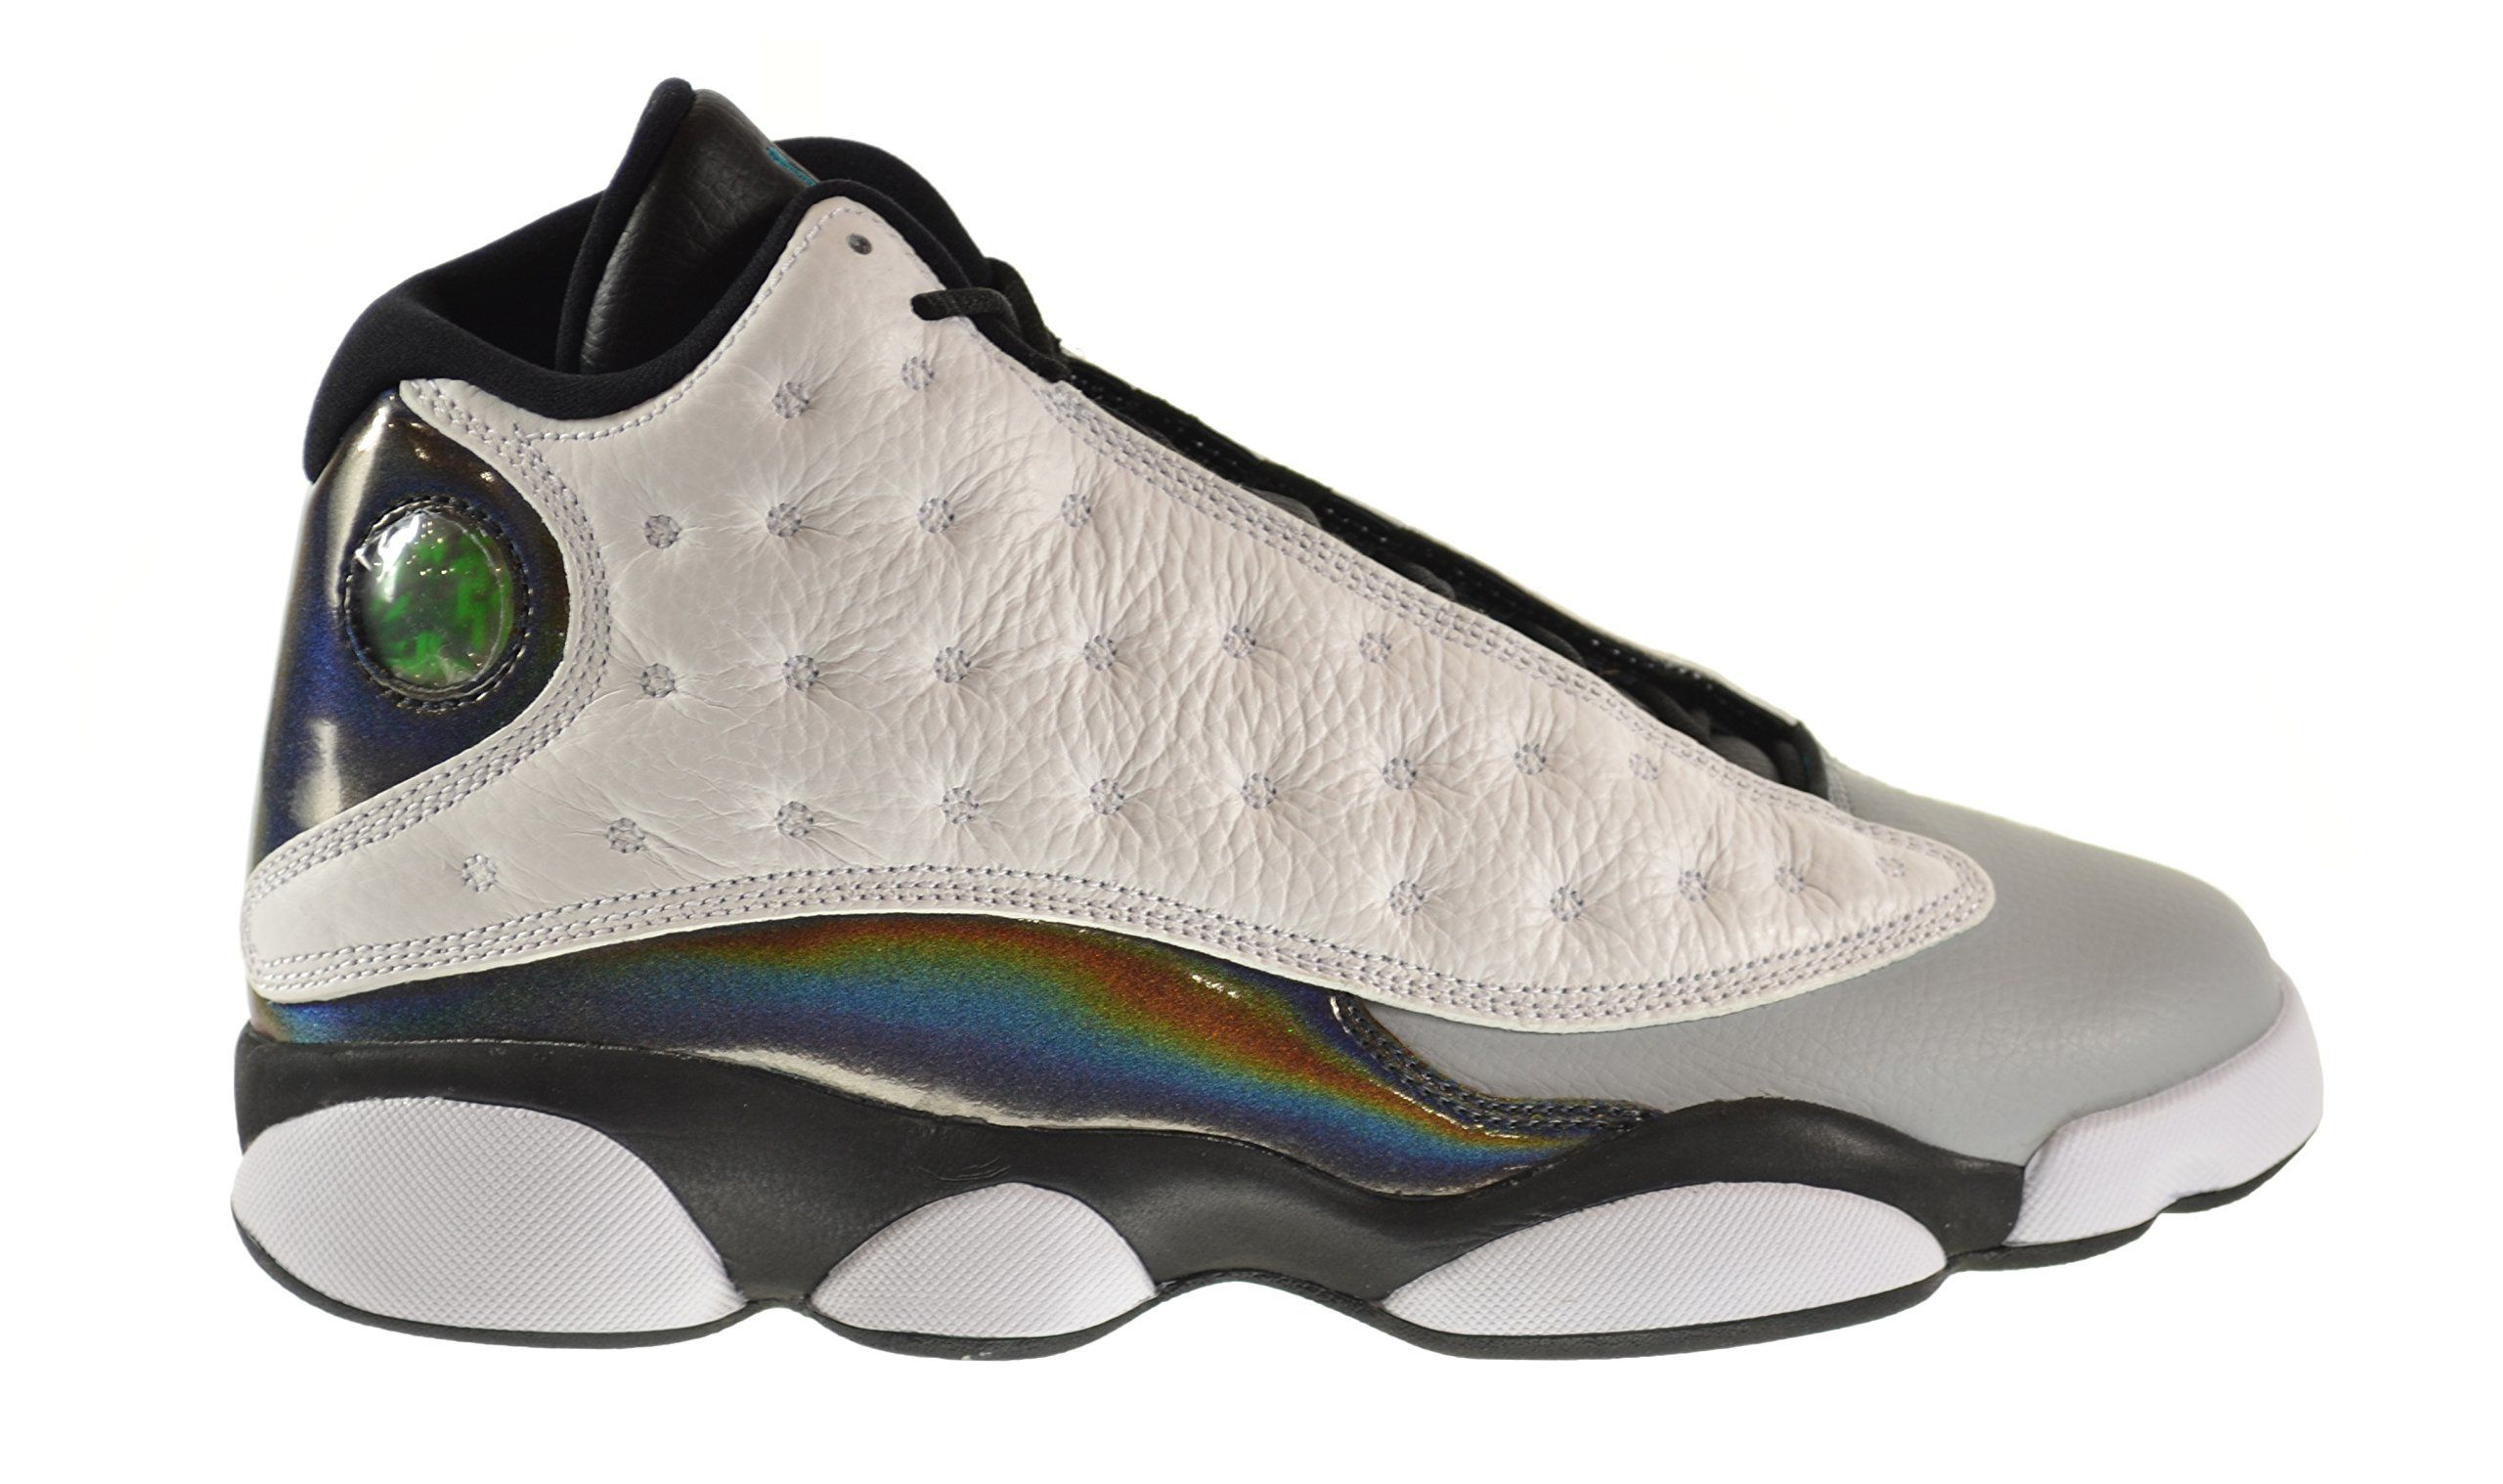 79ed04533fc9 Amazon.com  Air Jordan 13 Retro